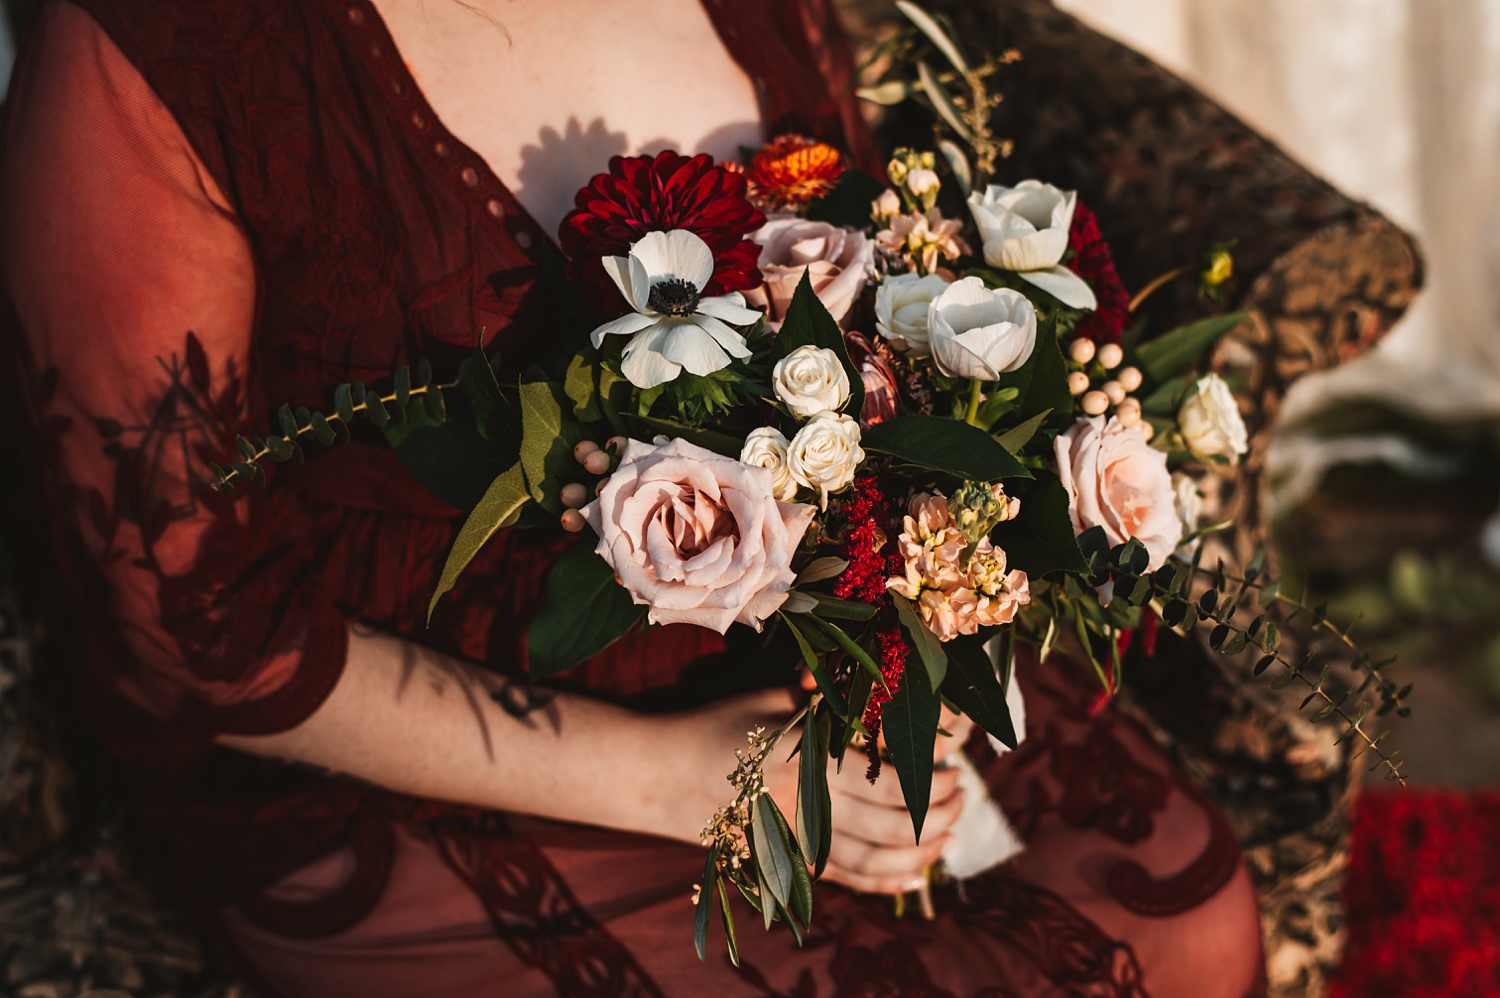 Pandemic Backyard Micro Wedding - The Adamkovi boho bride, crown, tattoos, armchair, burgundy dress bouquet